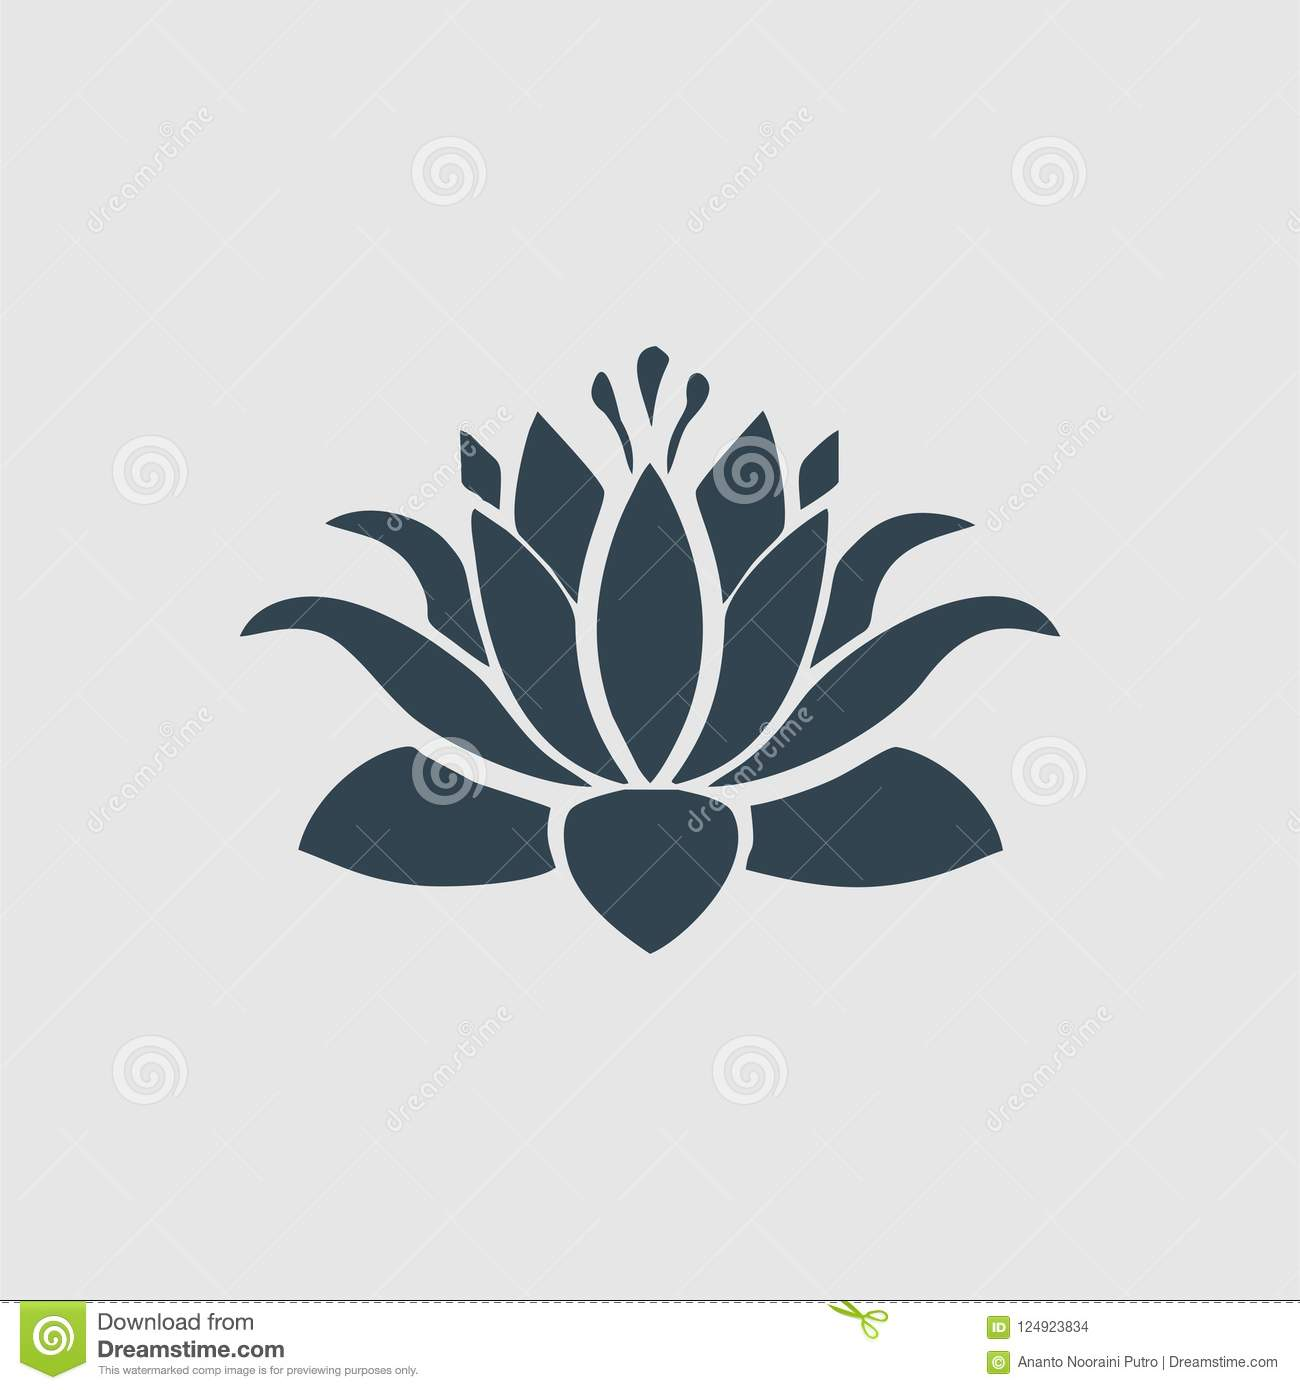 The Lotus Flower Logo Inspiration Stock Photo Illustration Of